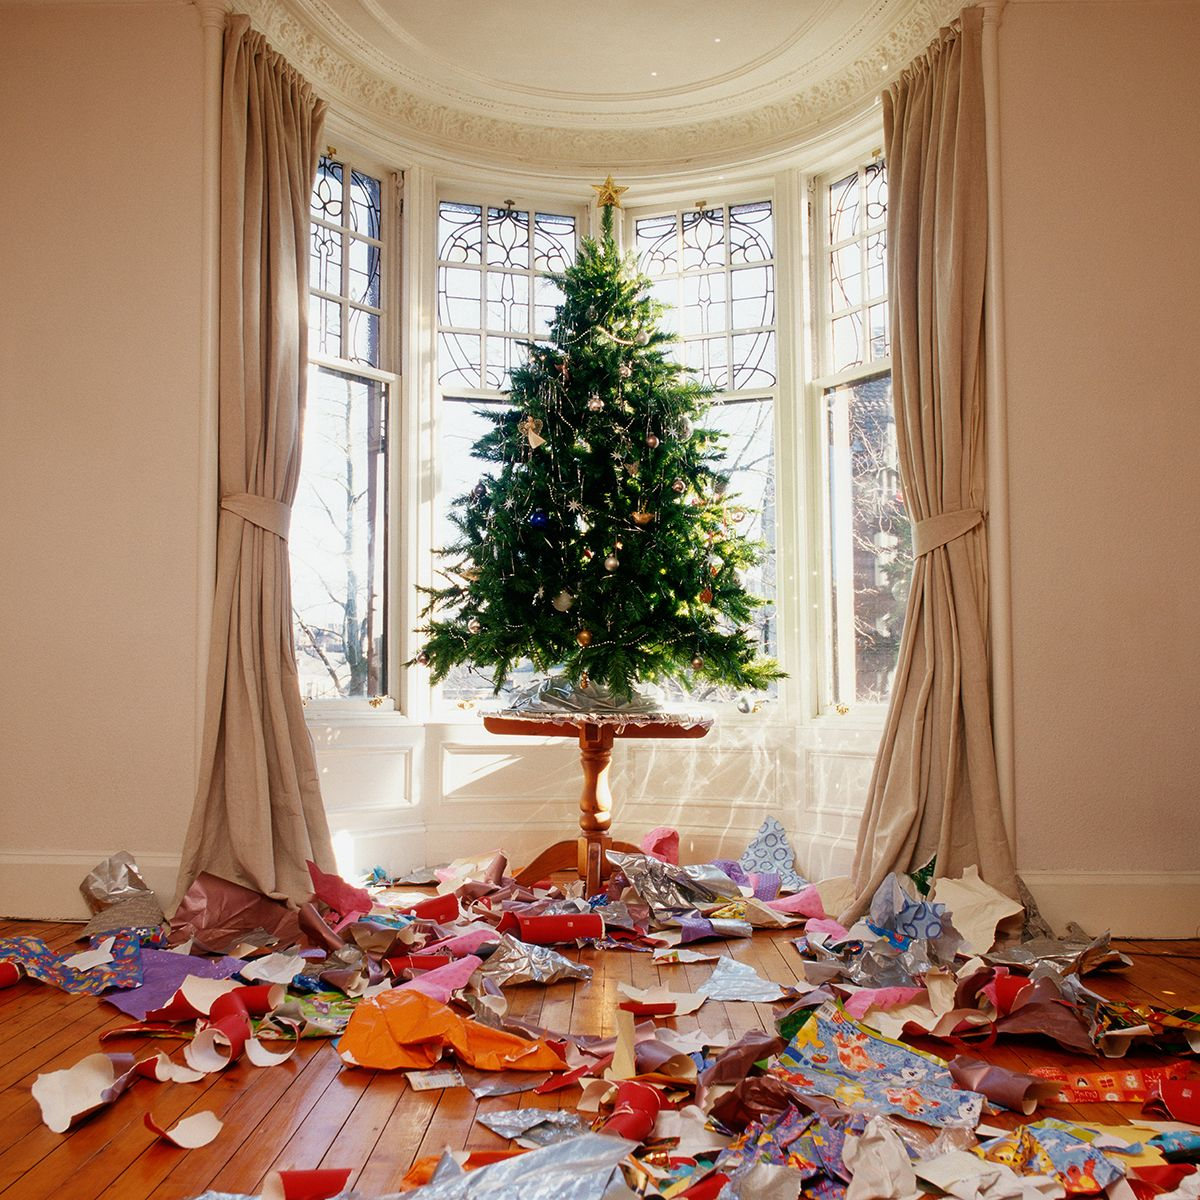 How To Recycle Your Christmas Getting Rid Of Christmas Trees Cards And Paper